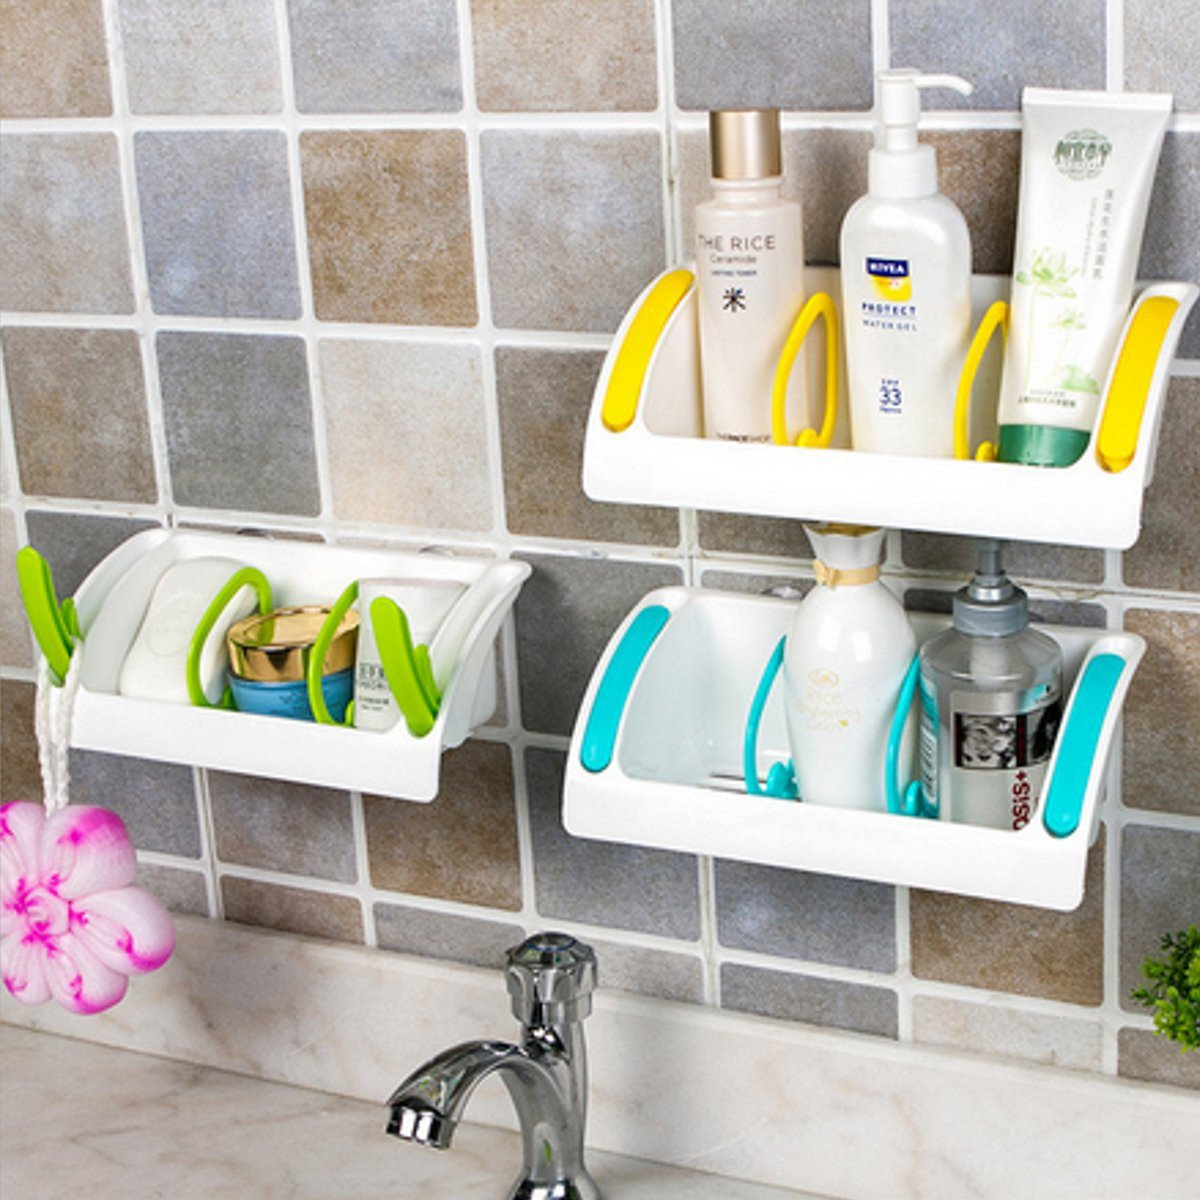 aliexpresscom buy 1pcs kitchen sink suction cup bathroom storage shelf rack home bathroom sundries holder organiser tray from reliable rack rail - Kitchen Sink Holder